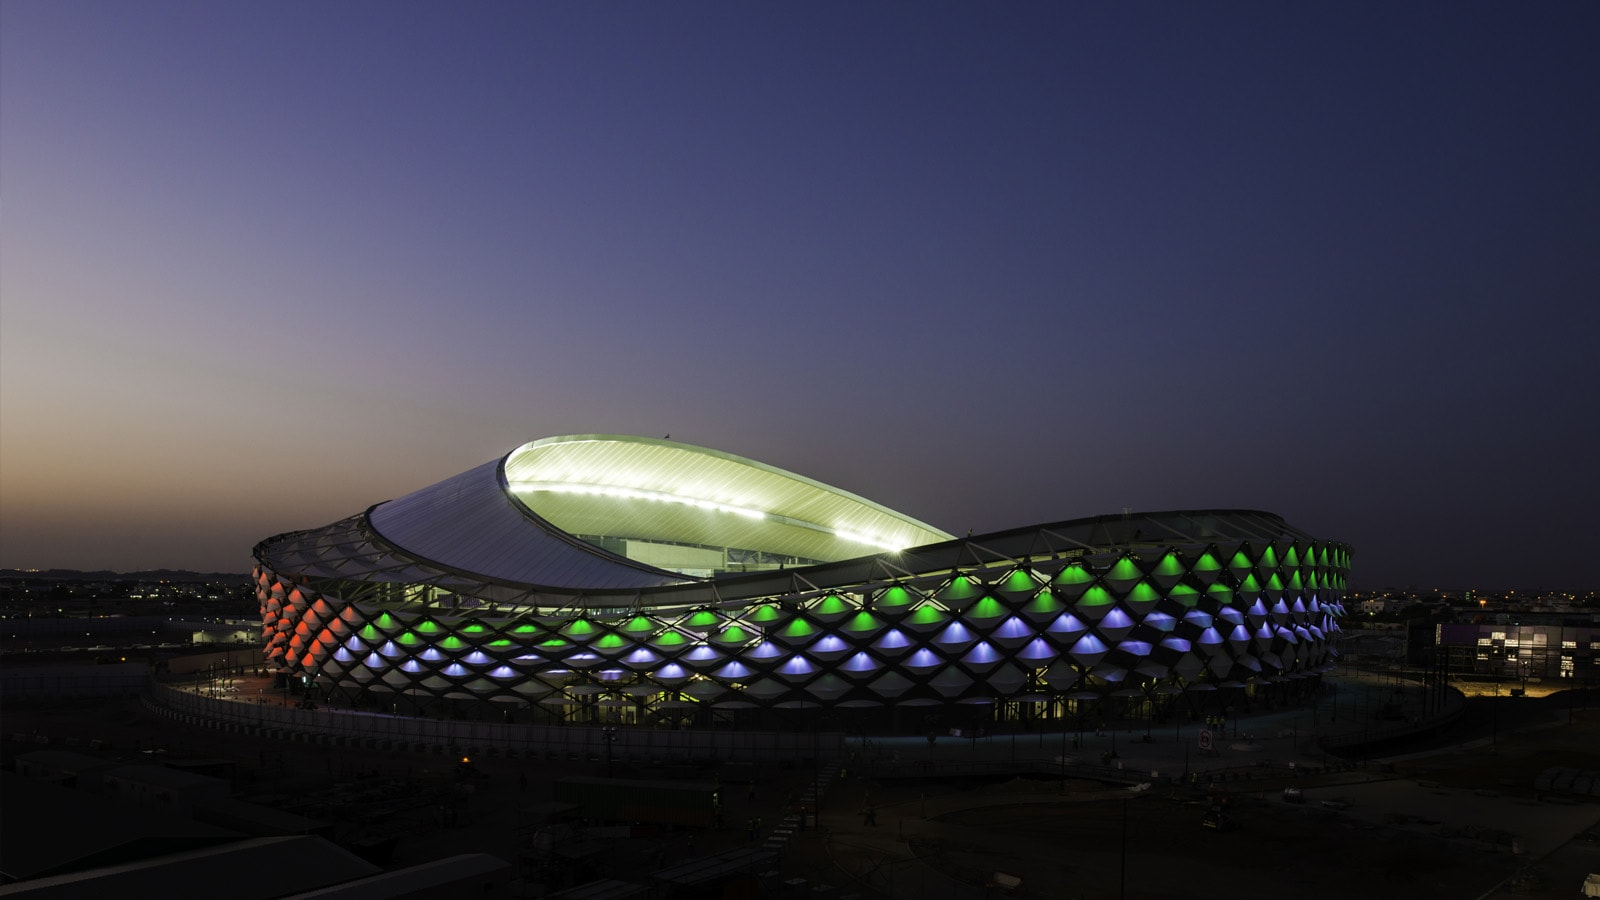 SACO ILLUMINATES ONE OF TODAY'S MOST STUNNING ARCHITECTURAL FEATS – THE HAZZA BIN ZAYED STADIUM, AL AIN CITY